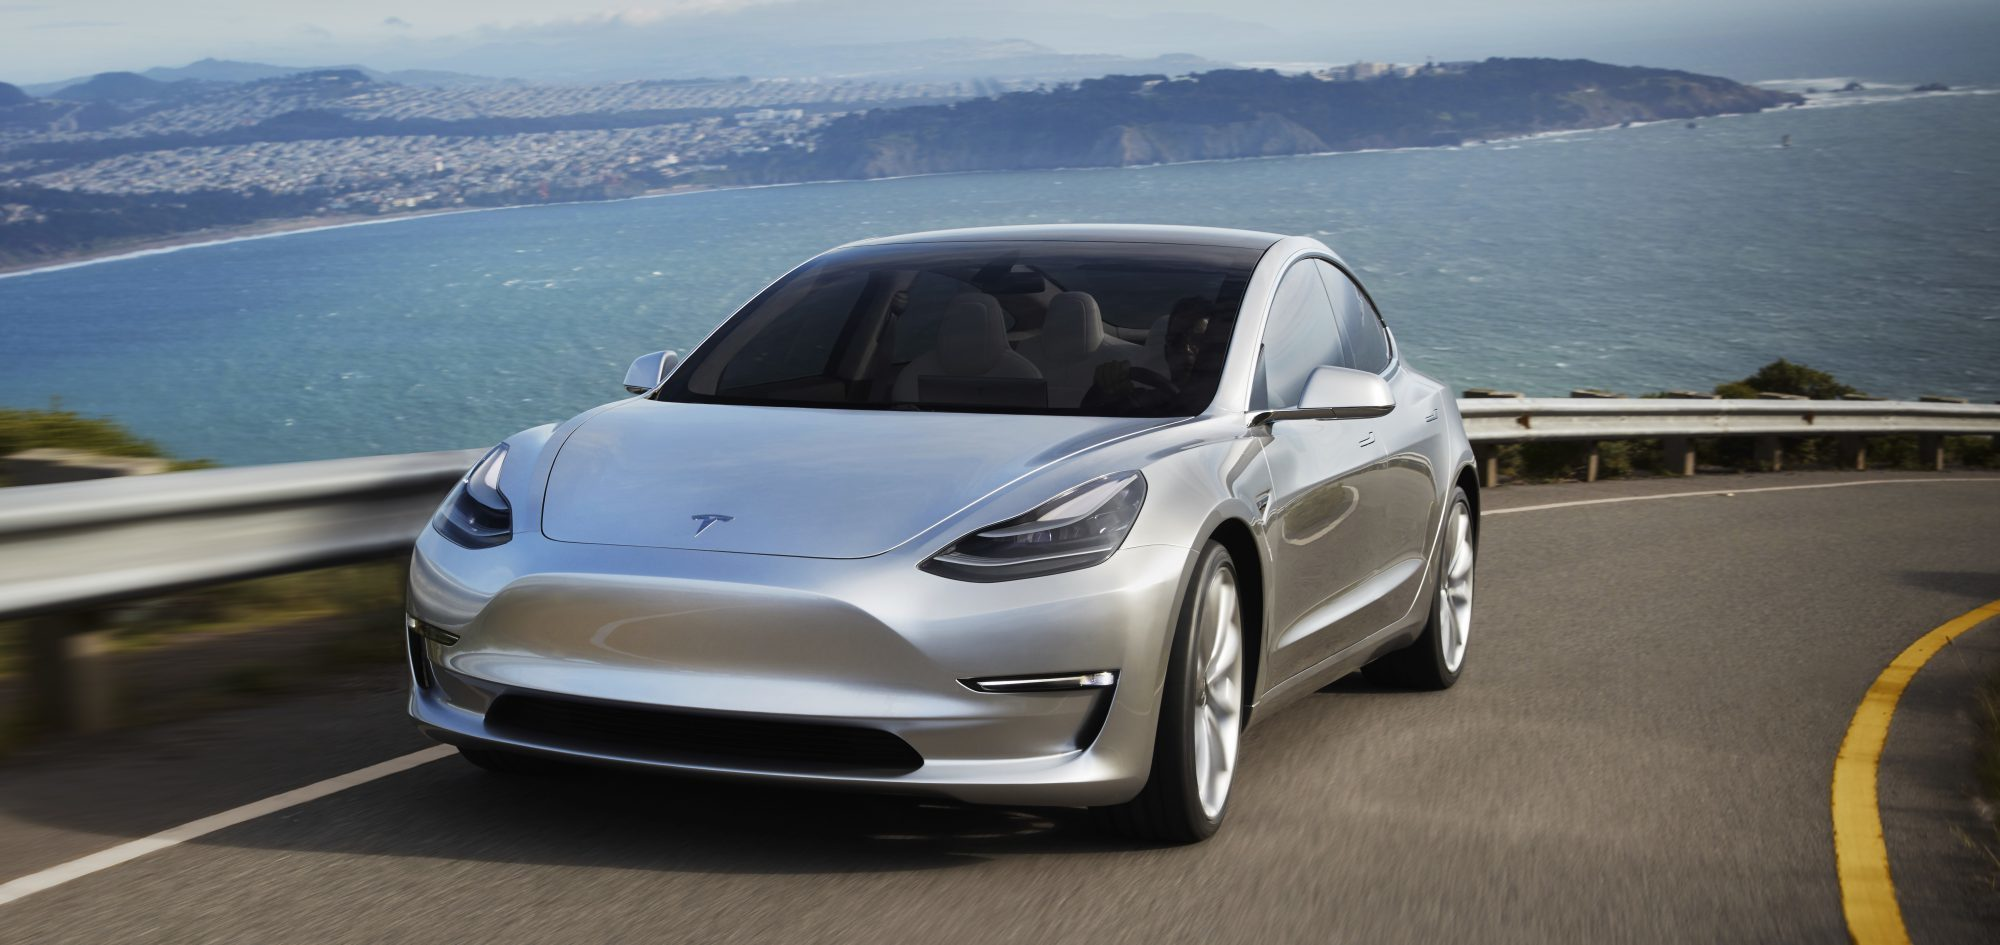 Four interesting facts about the tesla model 3 from elon musk inverse